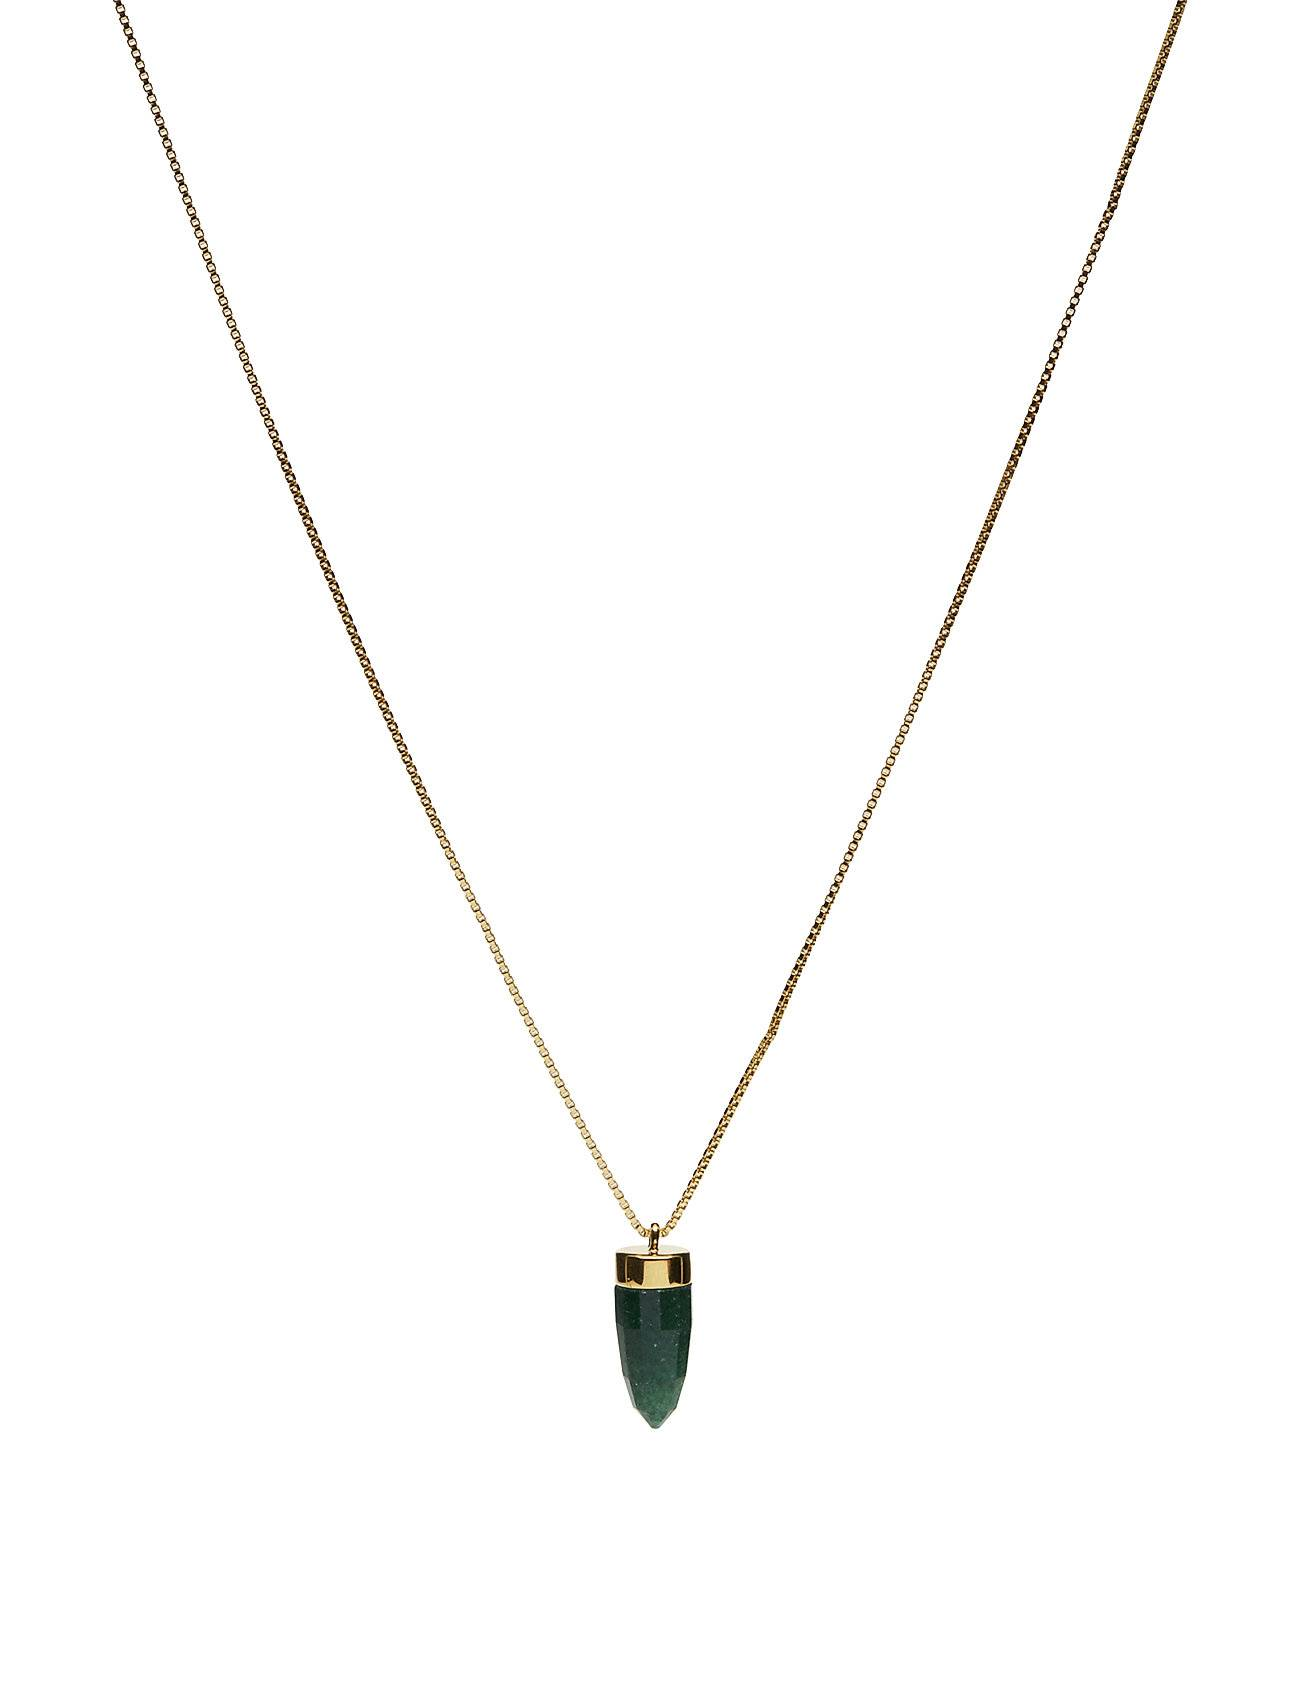 Syster P Panthera Stone Necklace Green Aventurine